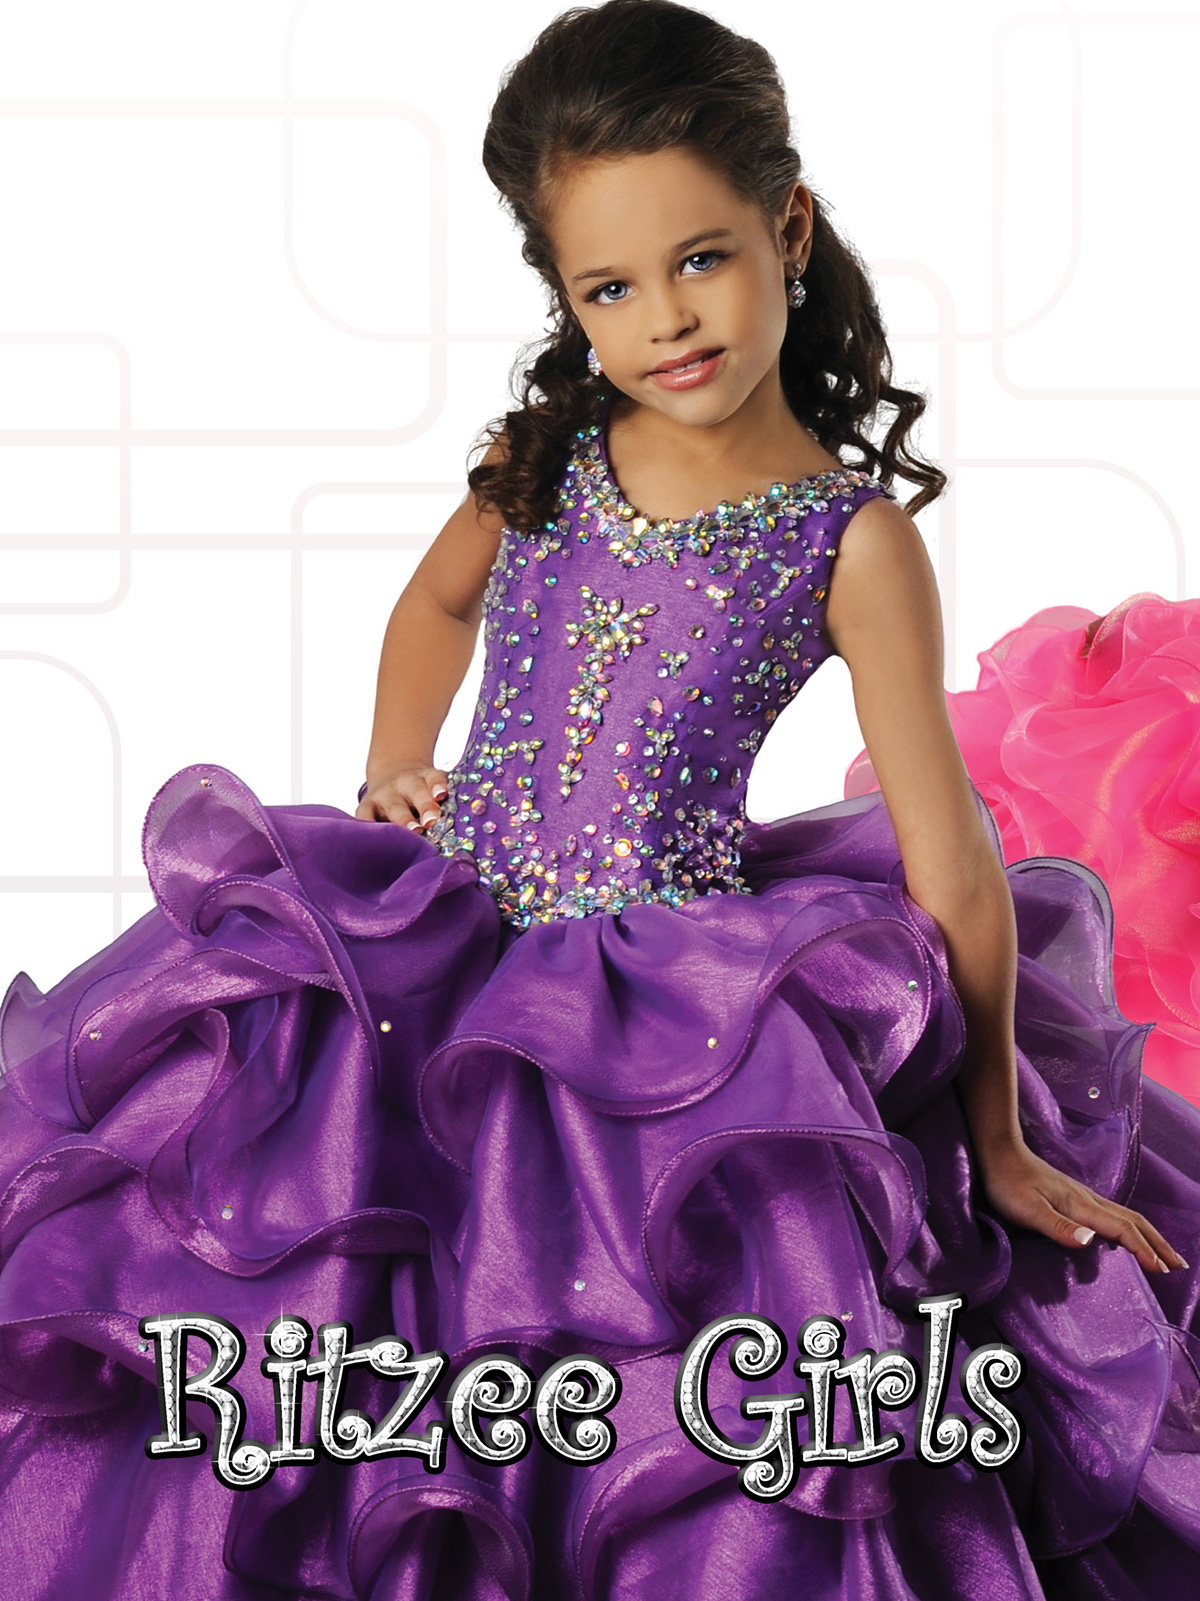 Ritzee Girls Ruffled Skirt Pageant Gown 7022|PageantDesigns.com